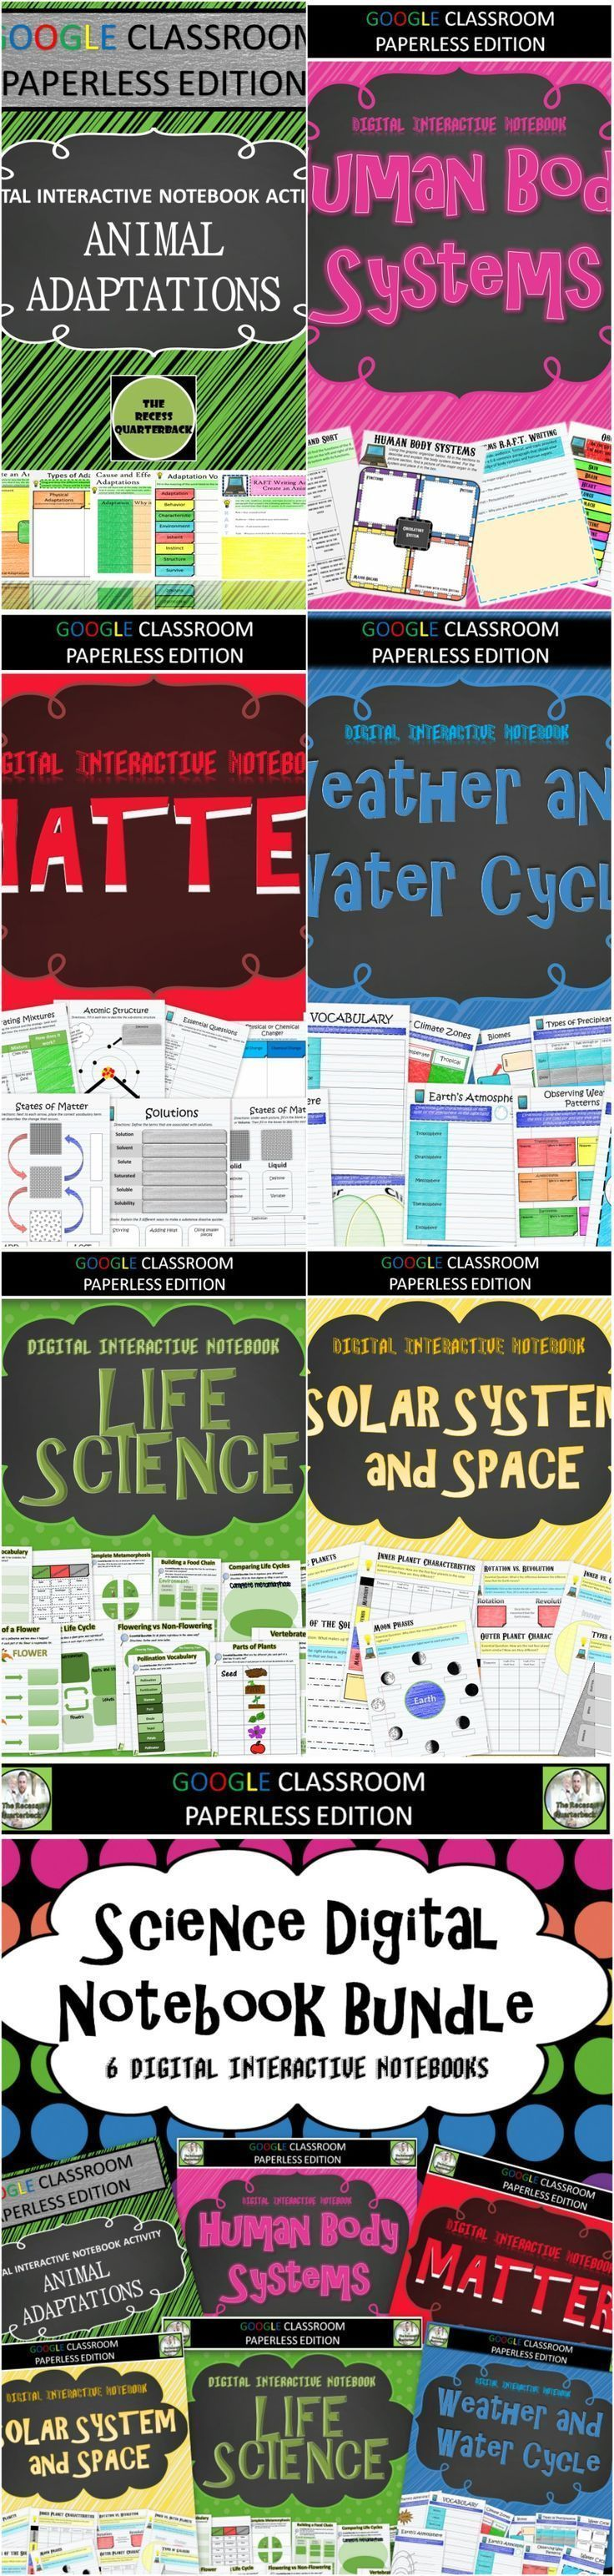 Google Classroom Science Notebook Bundle -   Moving towards a one to one implementation model this school year and need Science resources? This bundle included six different digital interactive notebook products that include the following topics: Animal A